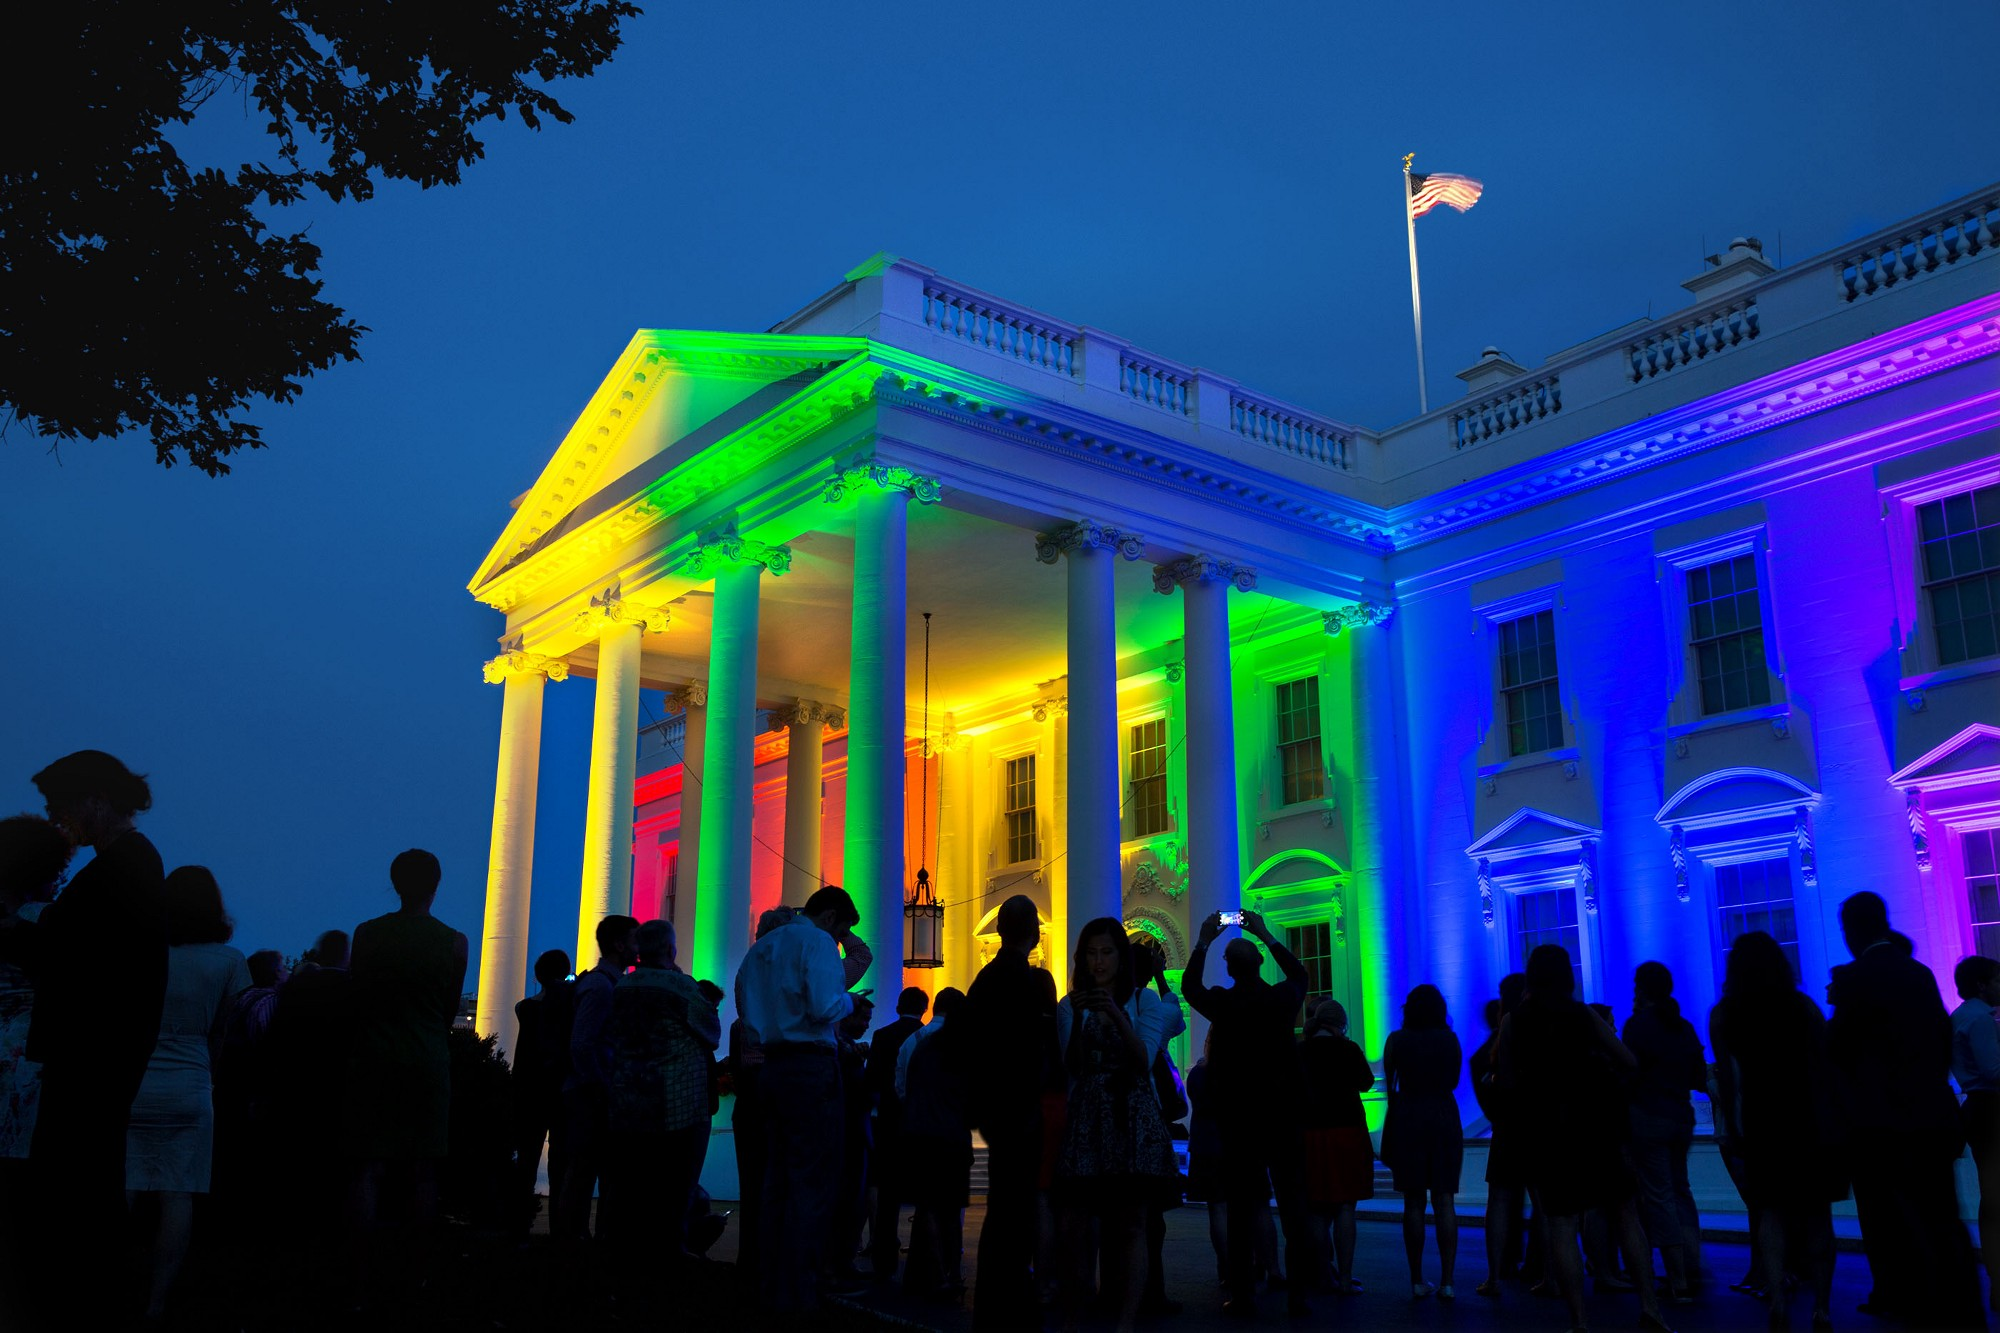 (Official White House Photo by Pete Souza)